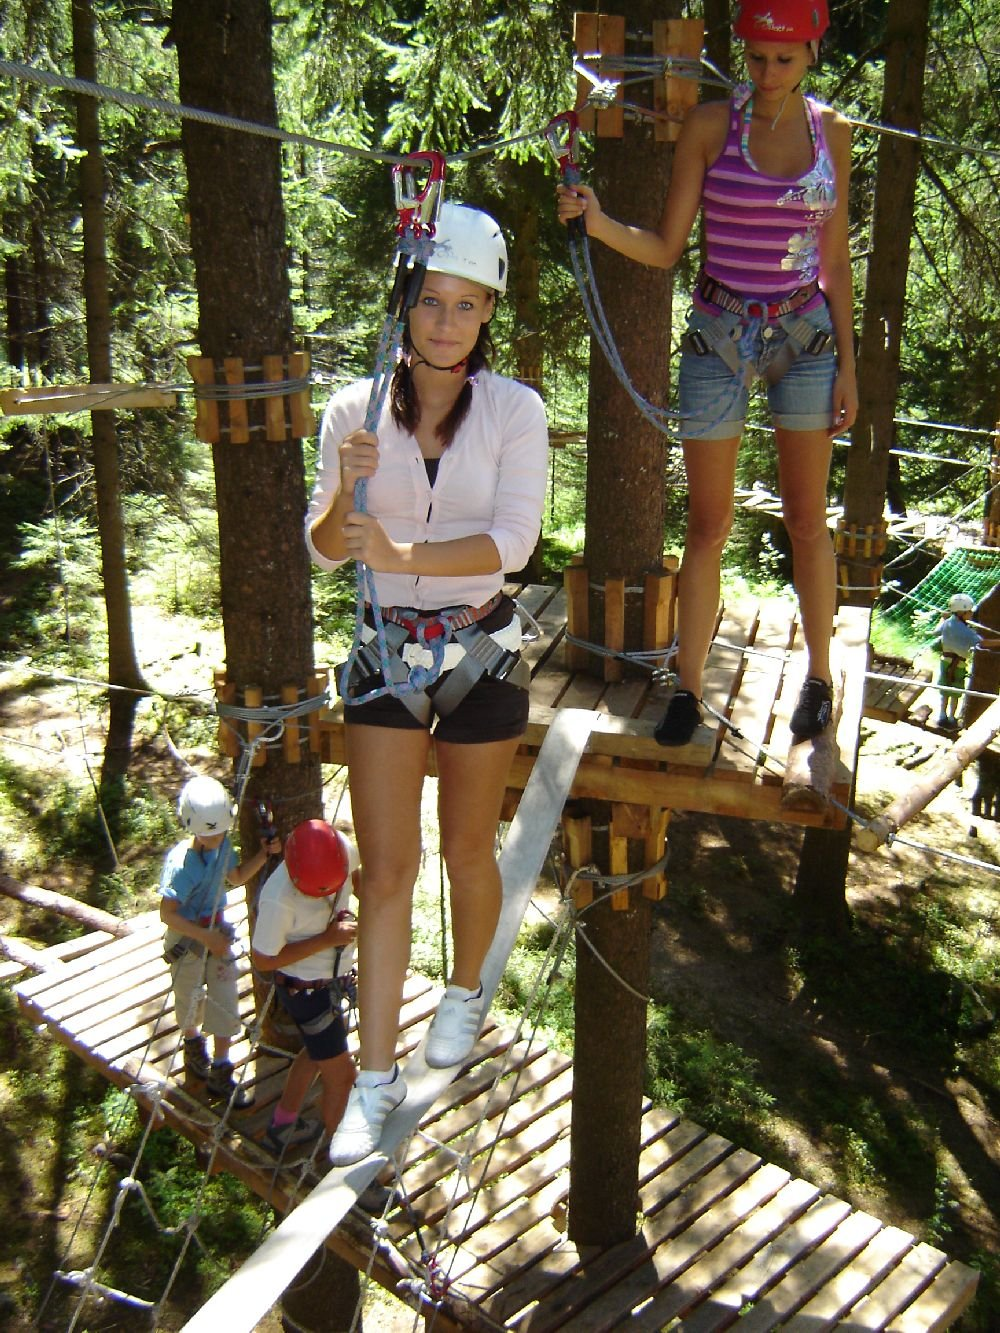 High-ropes course in Funes